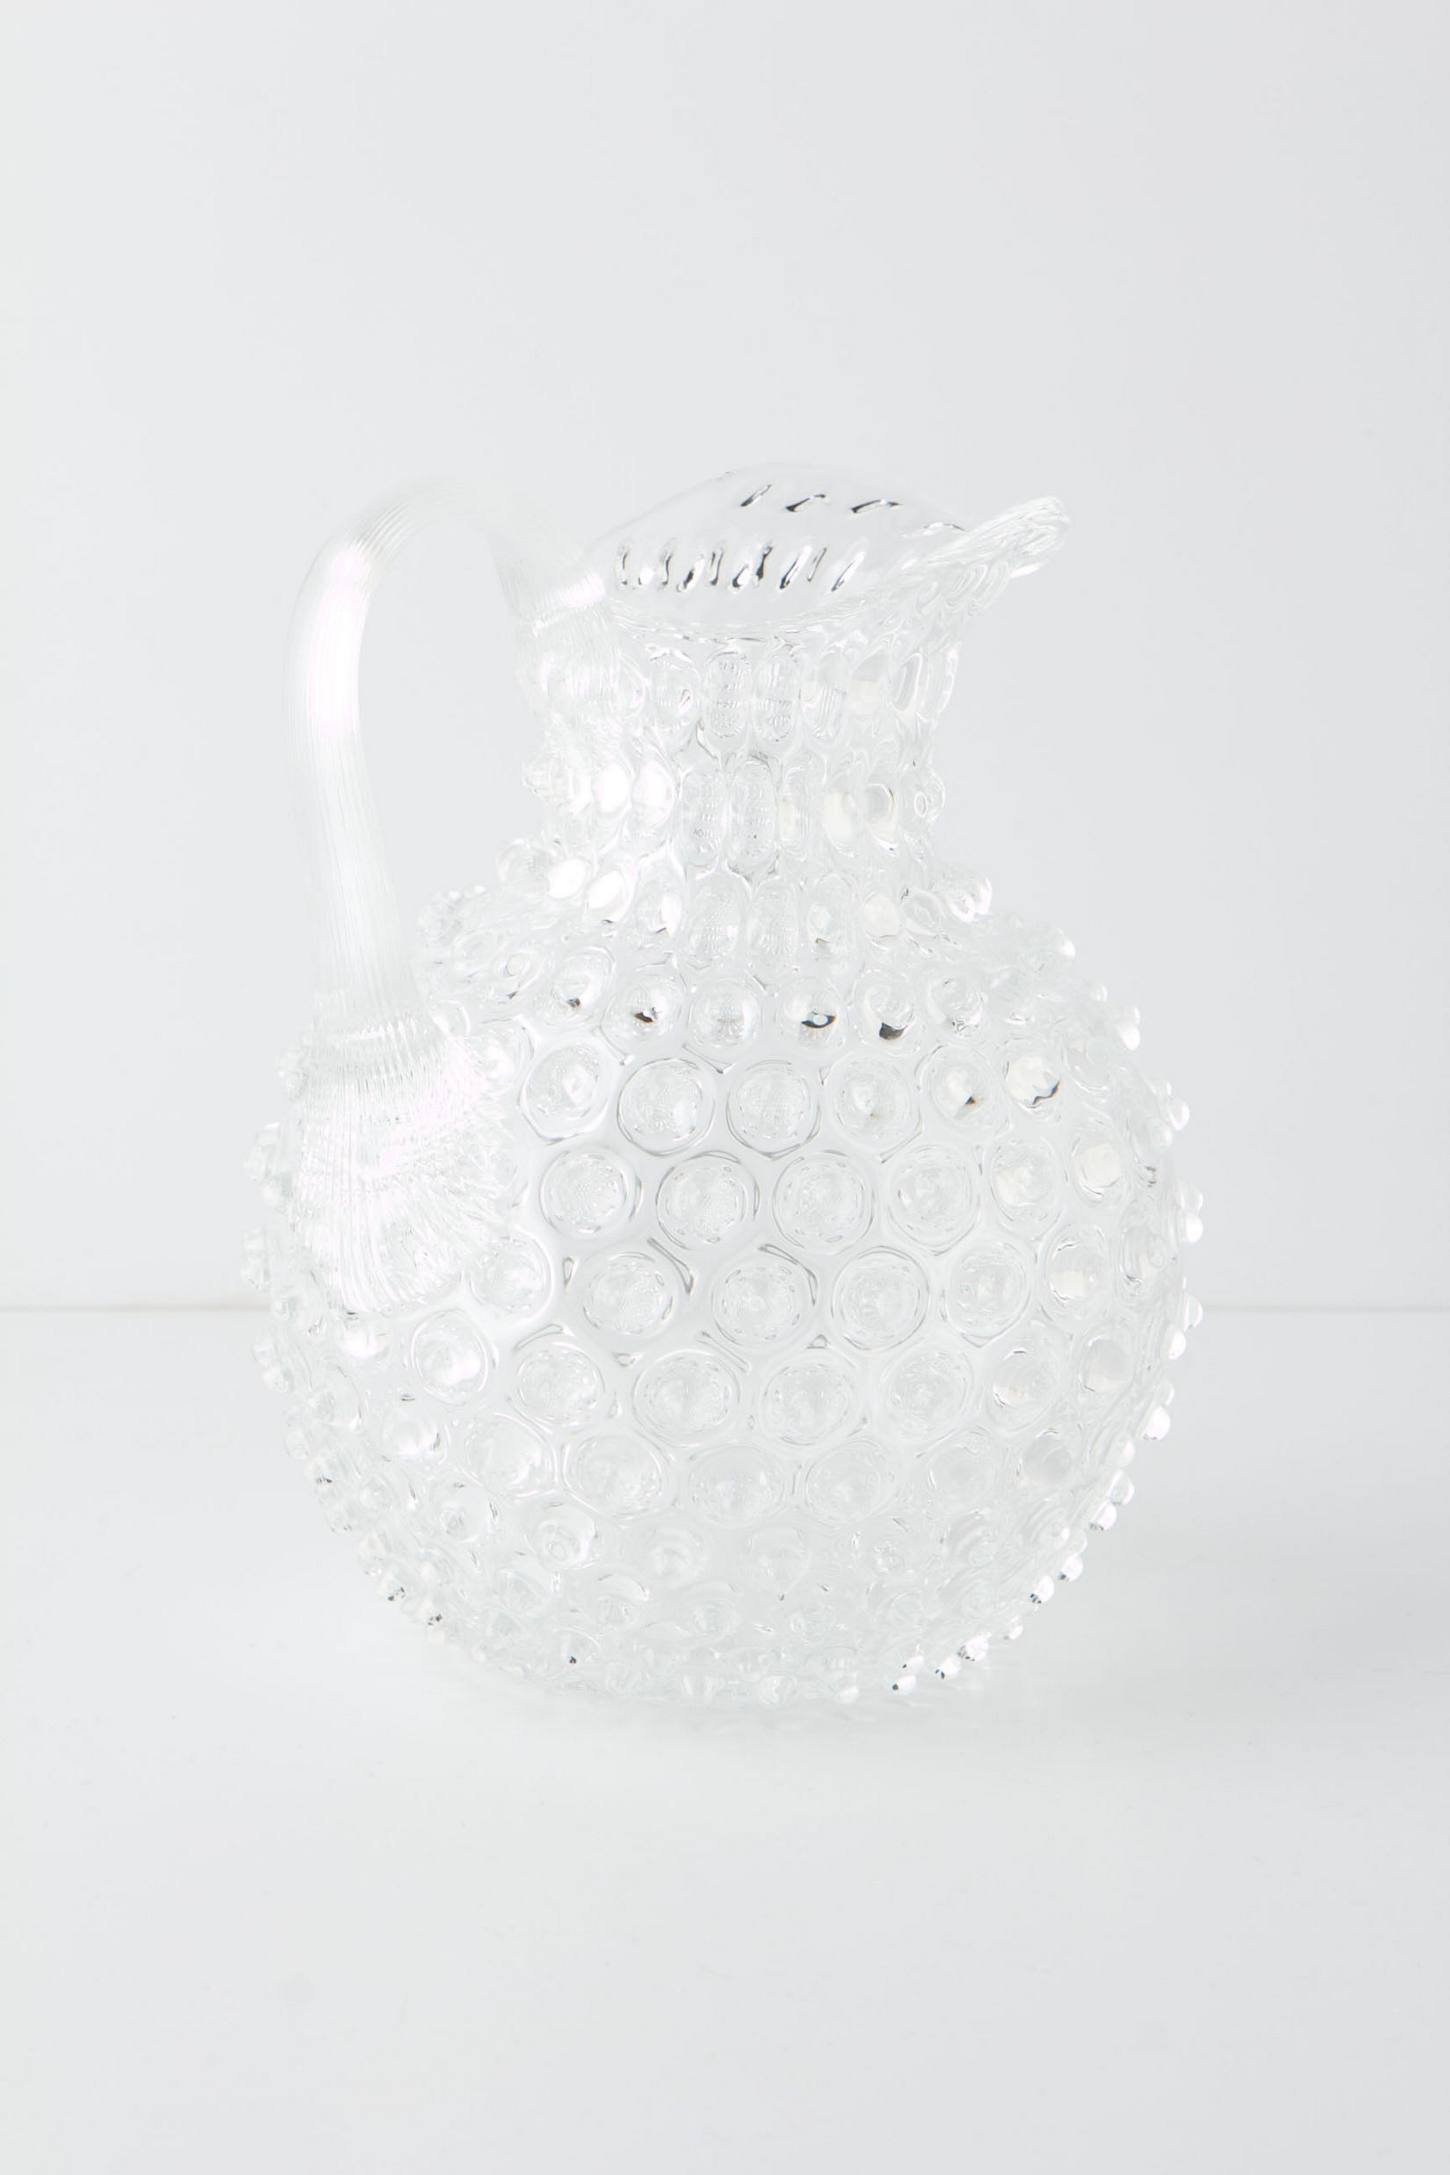 Slide View: 4: Hobnail Pitcher